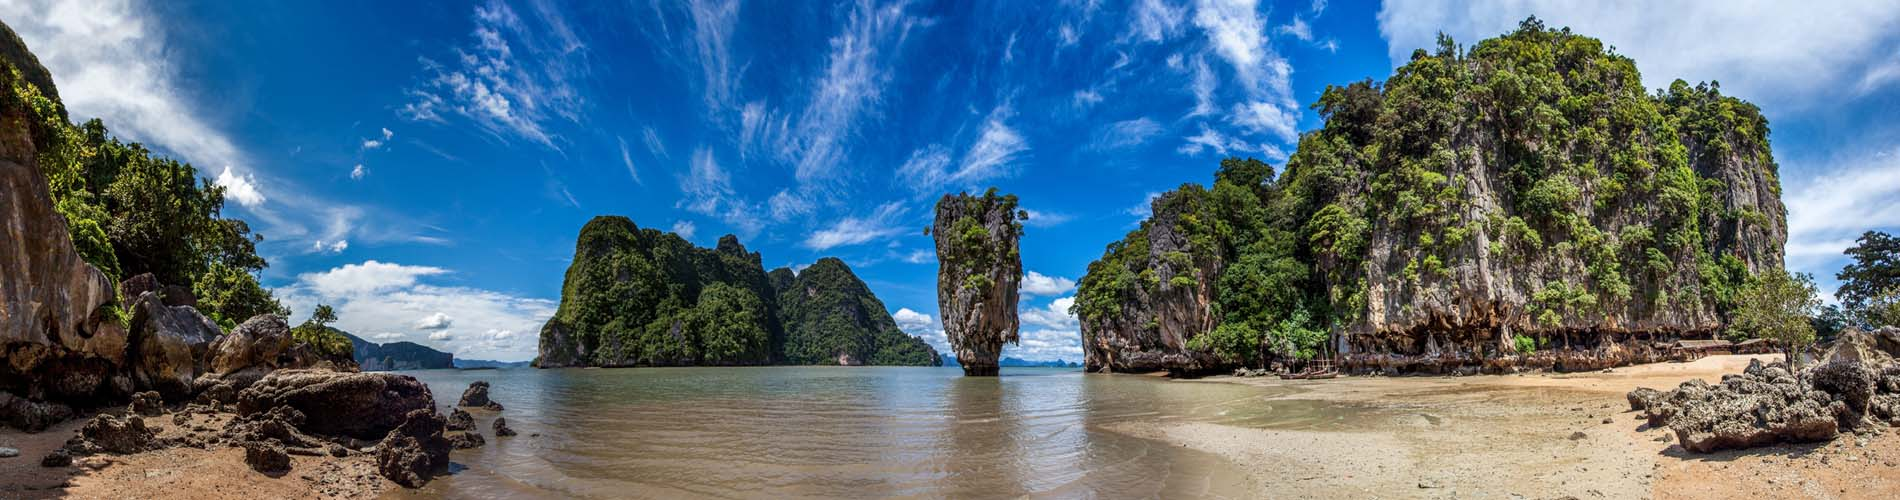 James Bond Islands Phuket Taxi And Tour